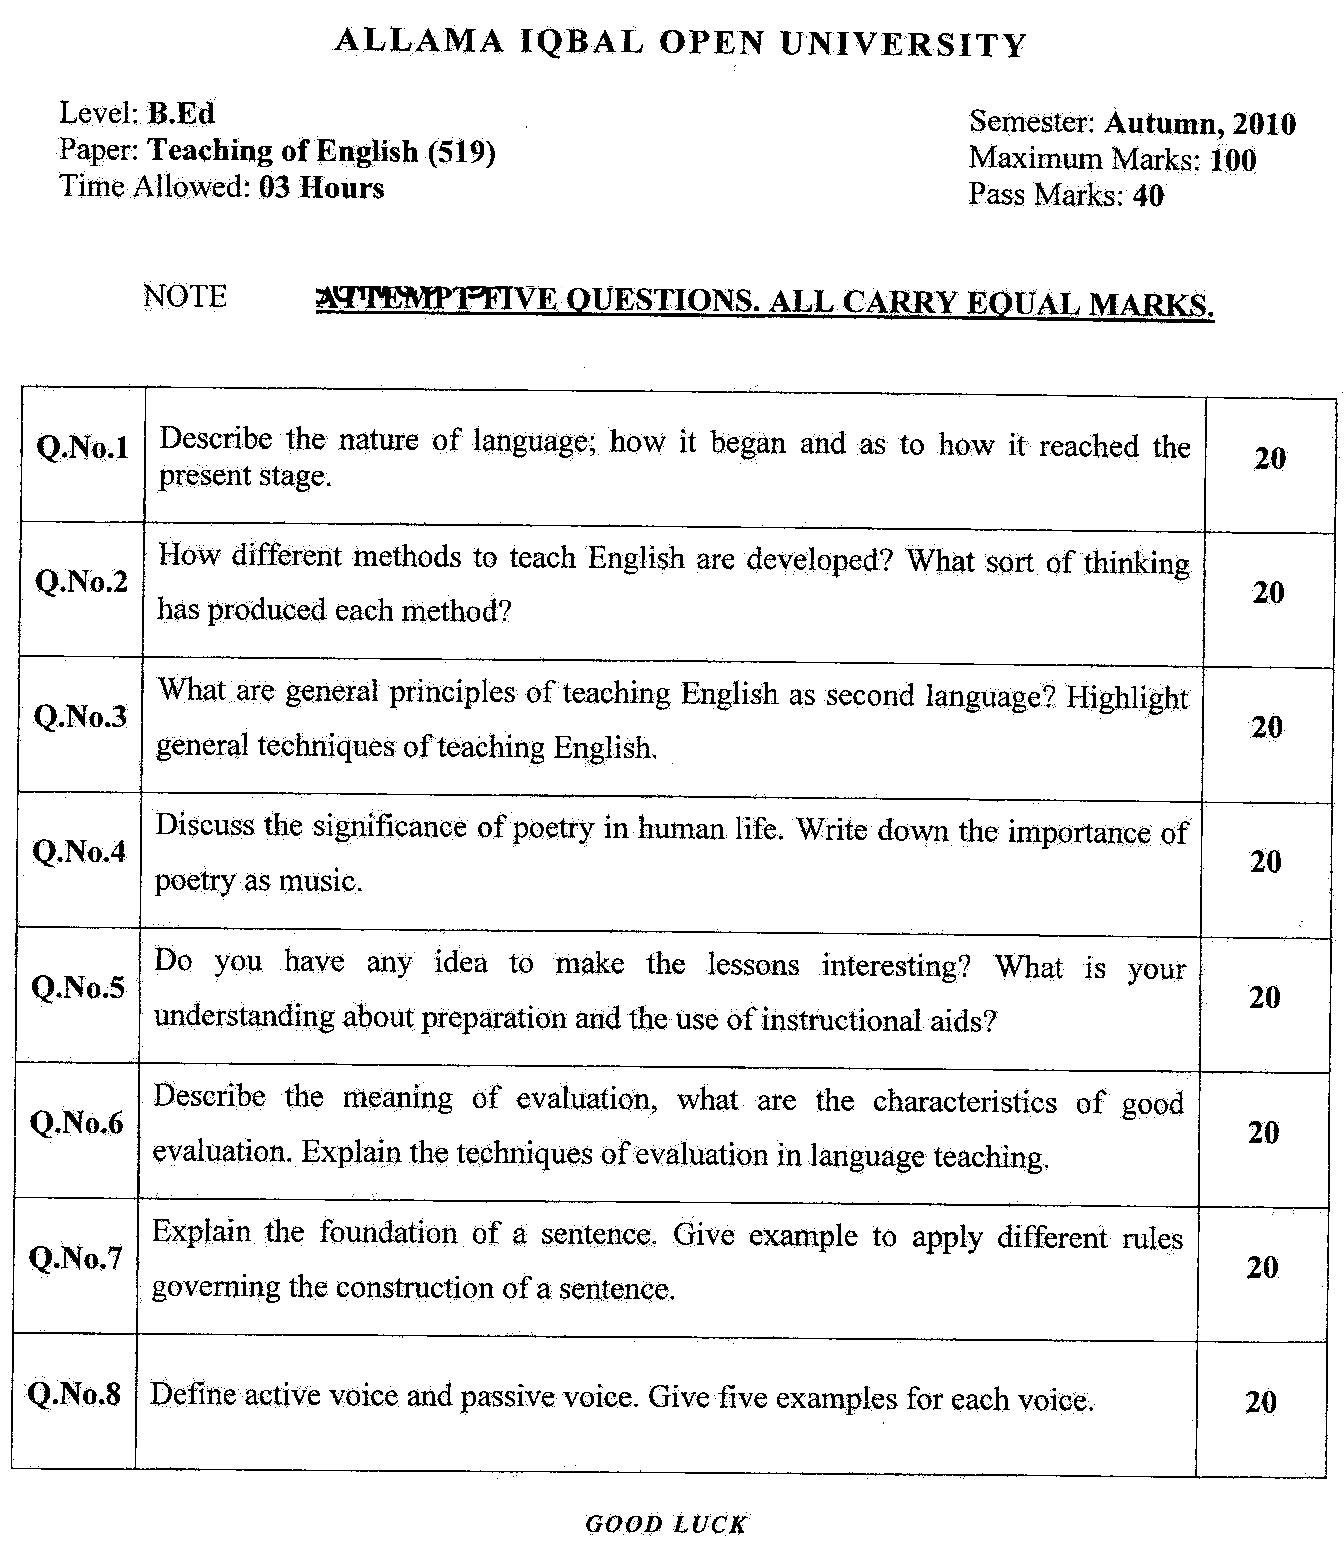 essay of teacher in english The teacher's manual provides a sample schedule, grading helps, and lesson-by -lesson instructions for teaching the material as well as sample compositions and answers after practicing the elements of an essay, students apply all they have learned by completing two essay assignments: a descriptive and a persuasive.